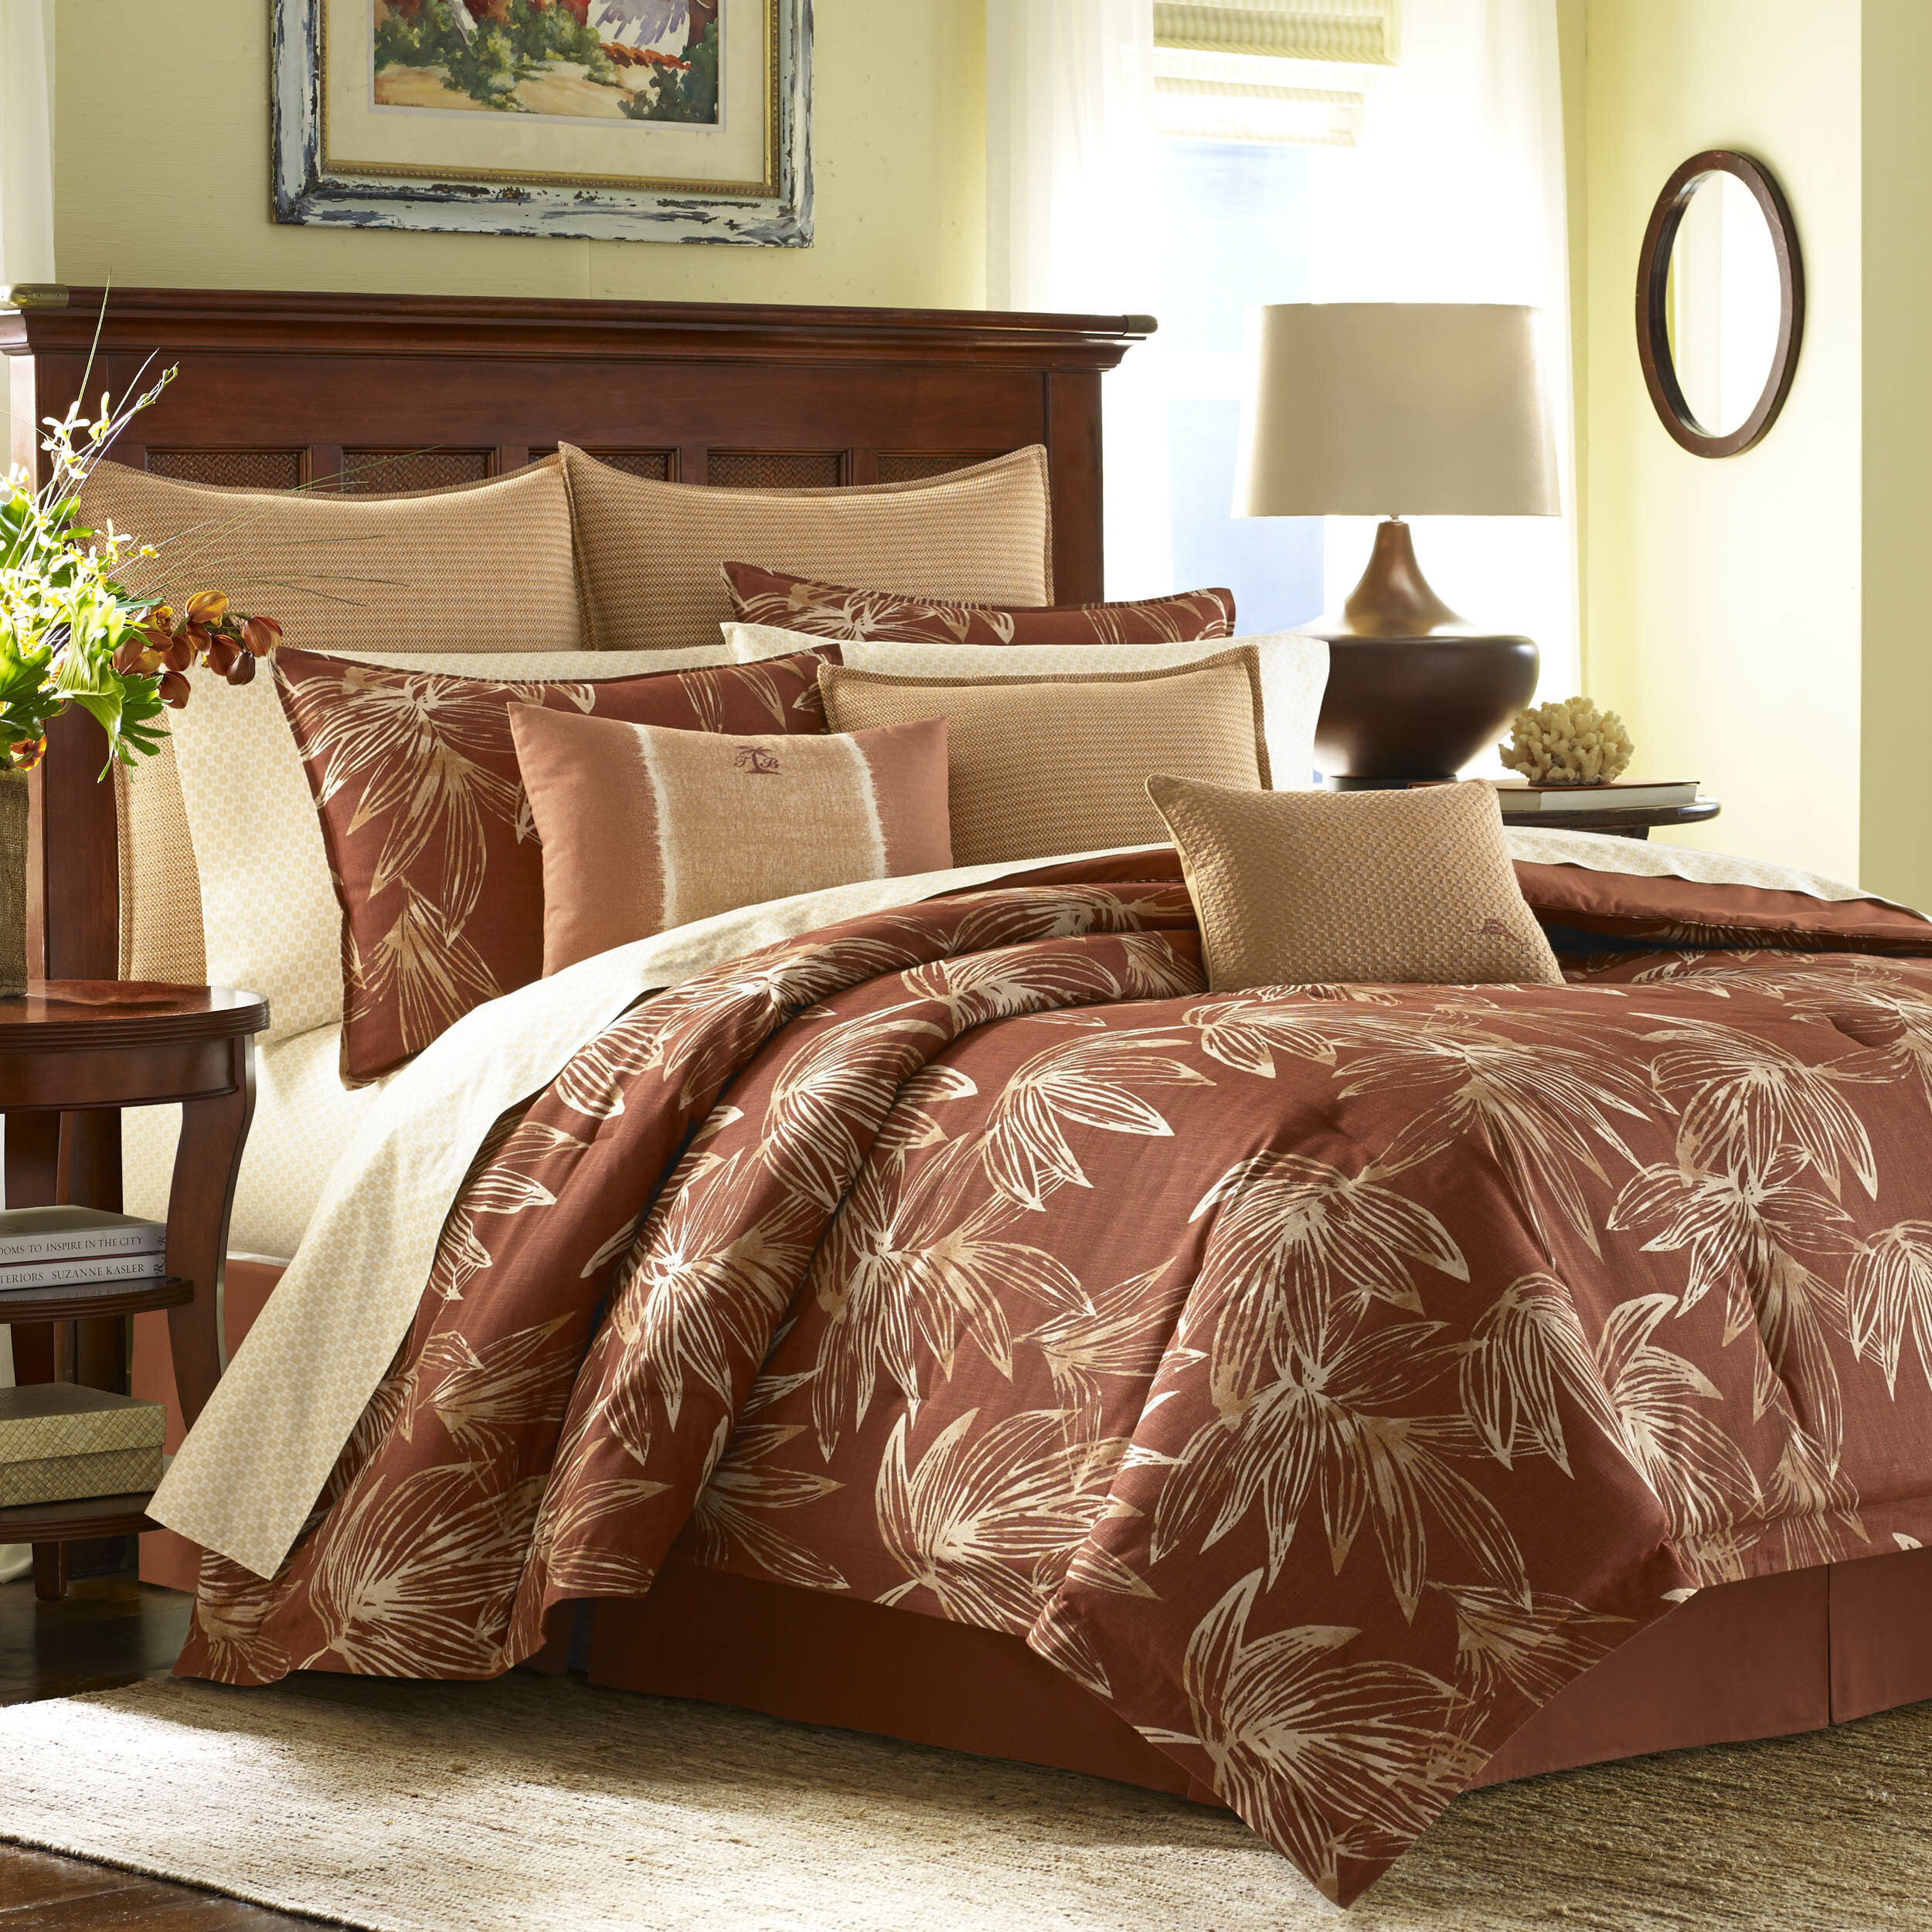 Tommy Bahama Home Cayo Cocco 4 Piece Comforter Set by Tommy Bahama ...